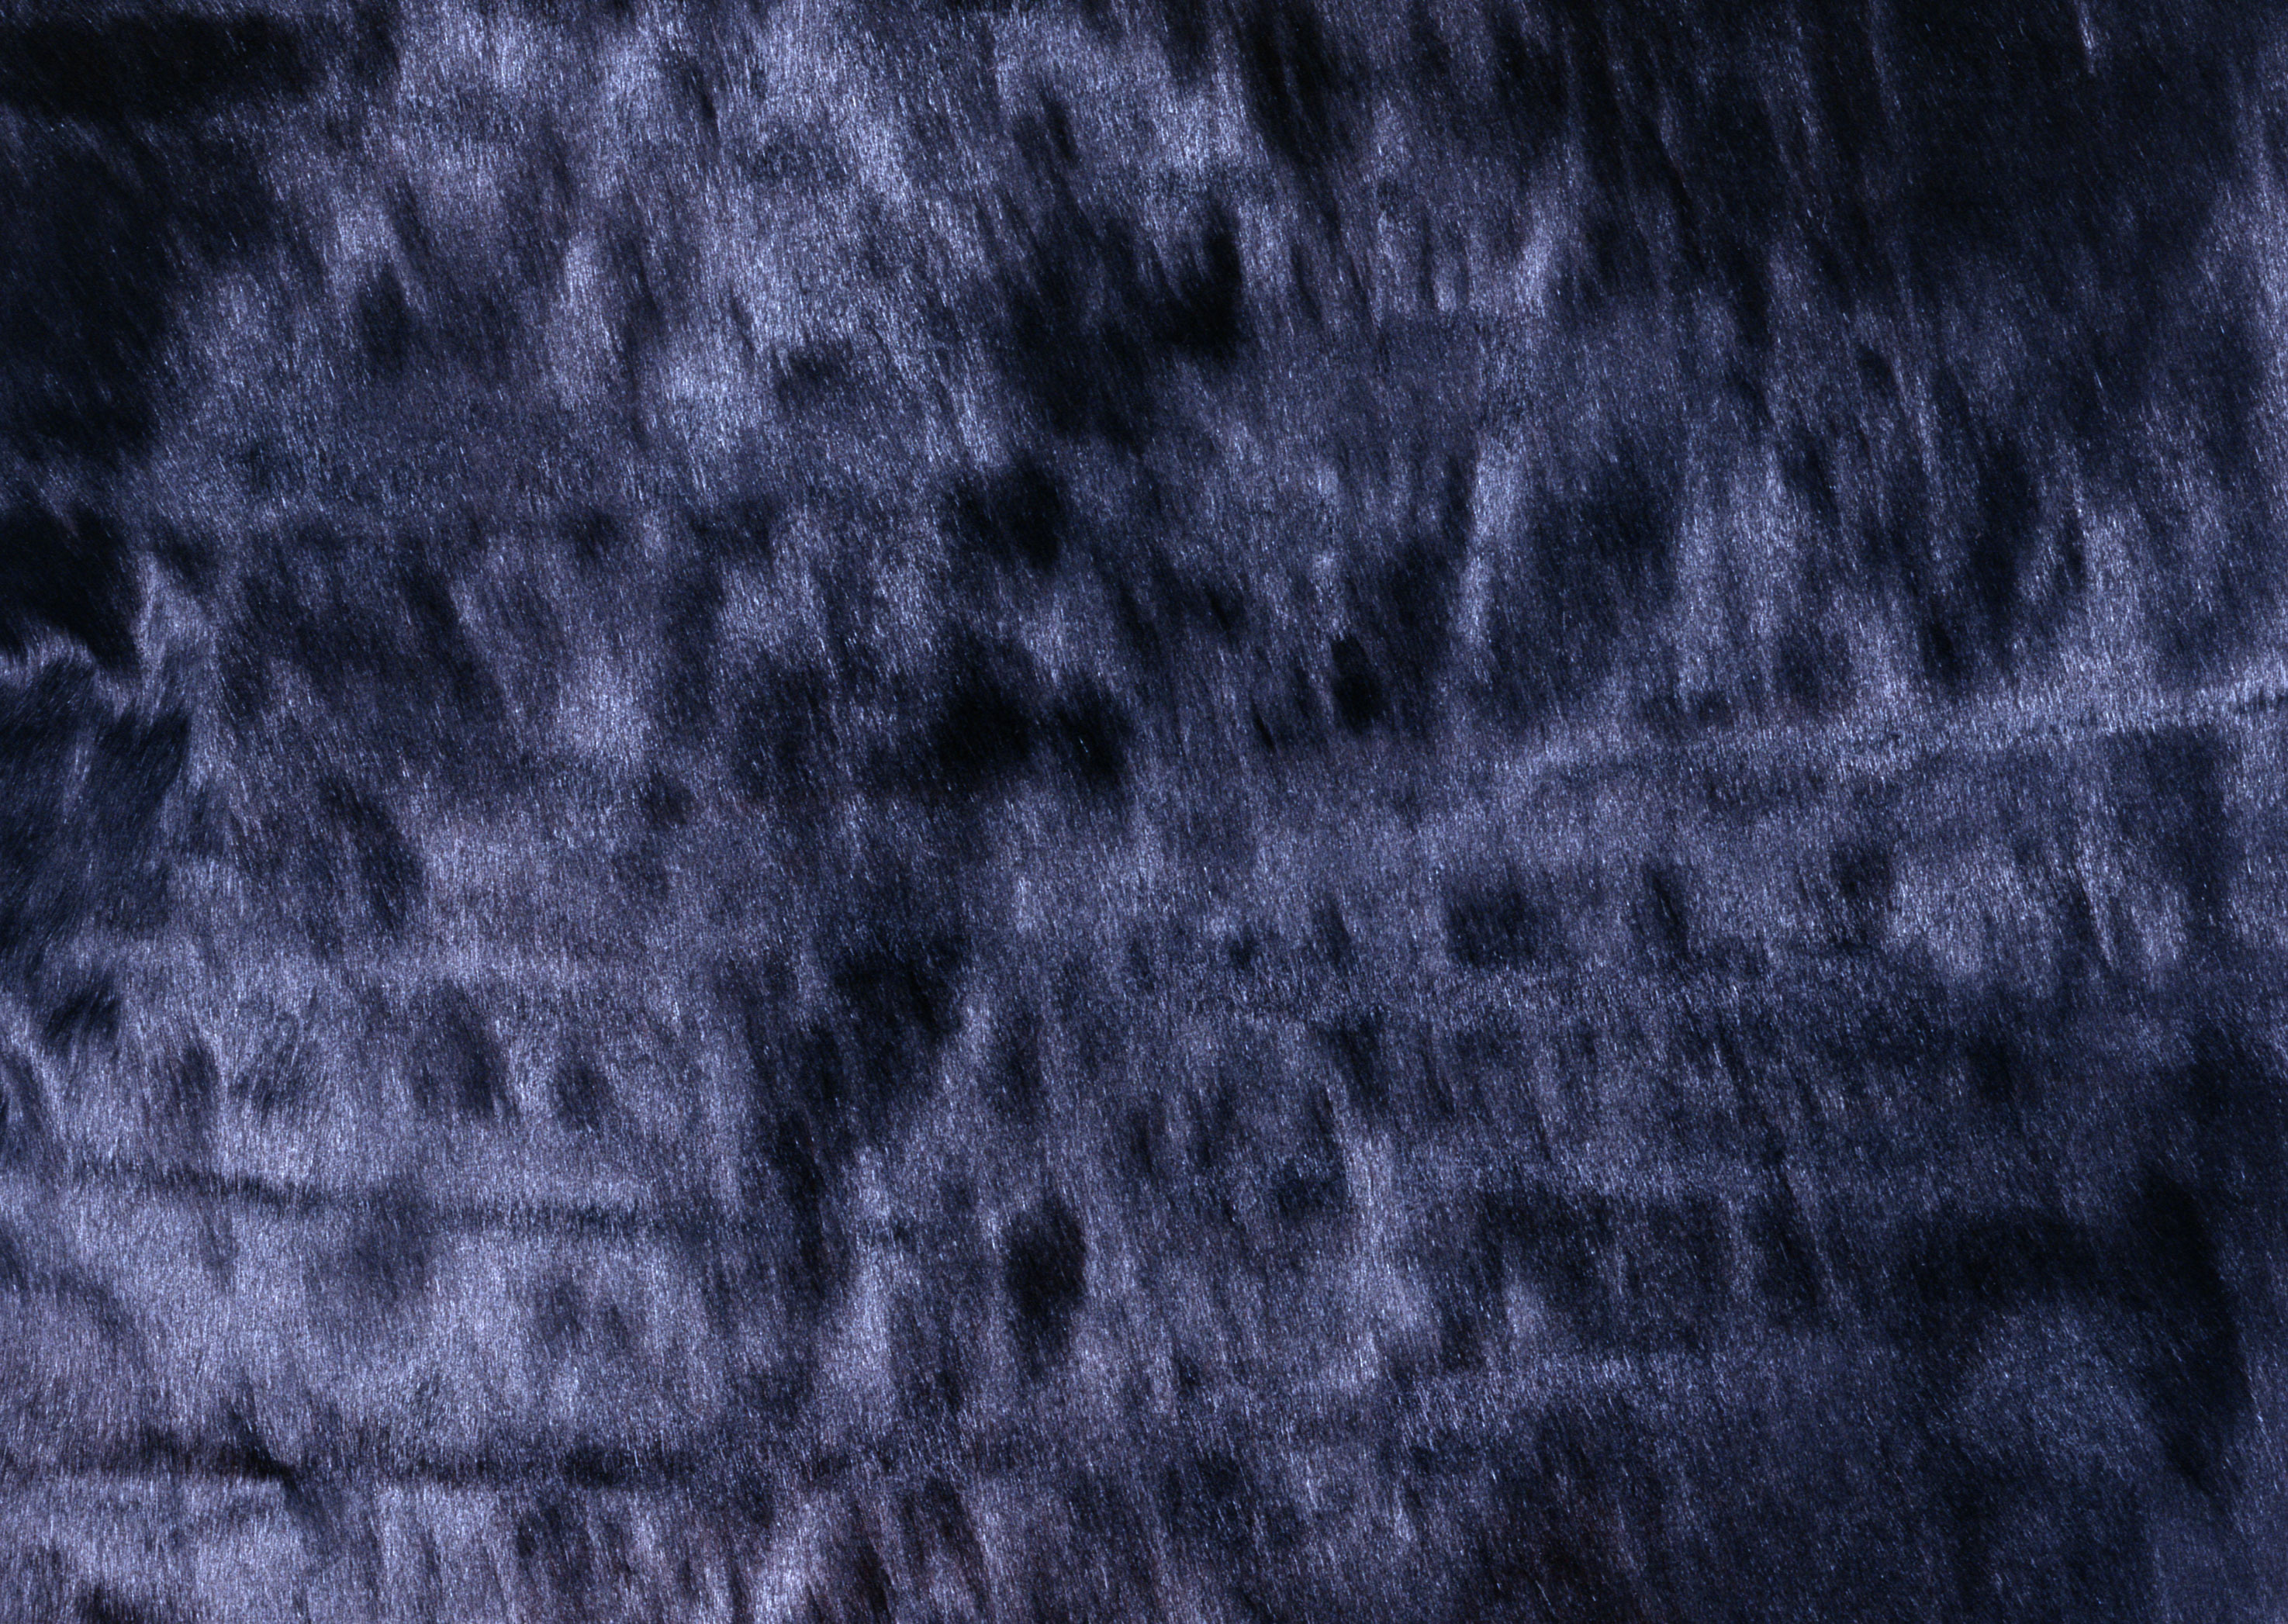 Fur texture background image